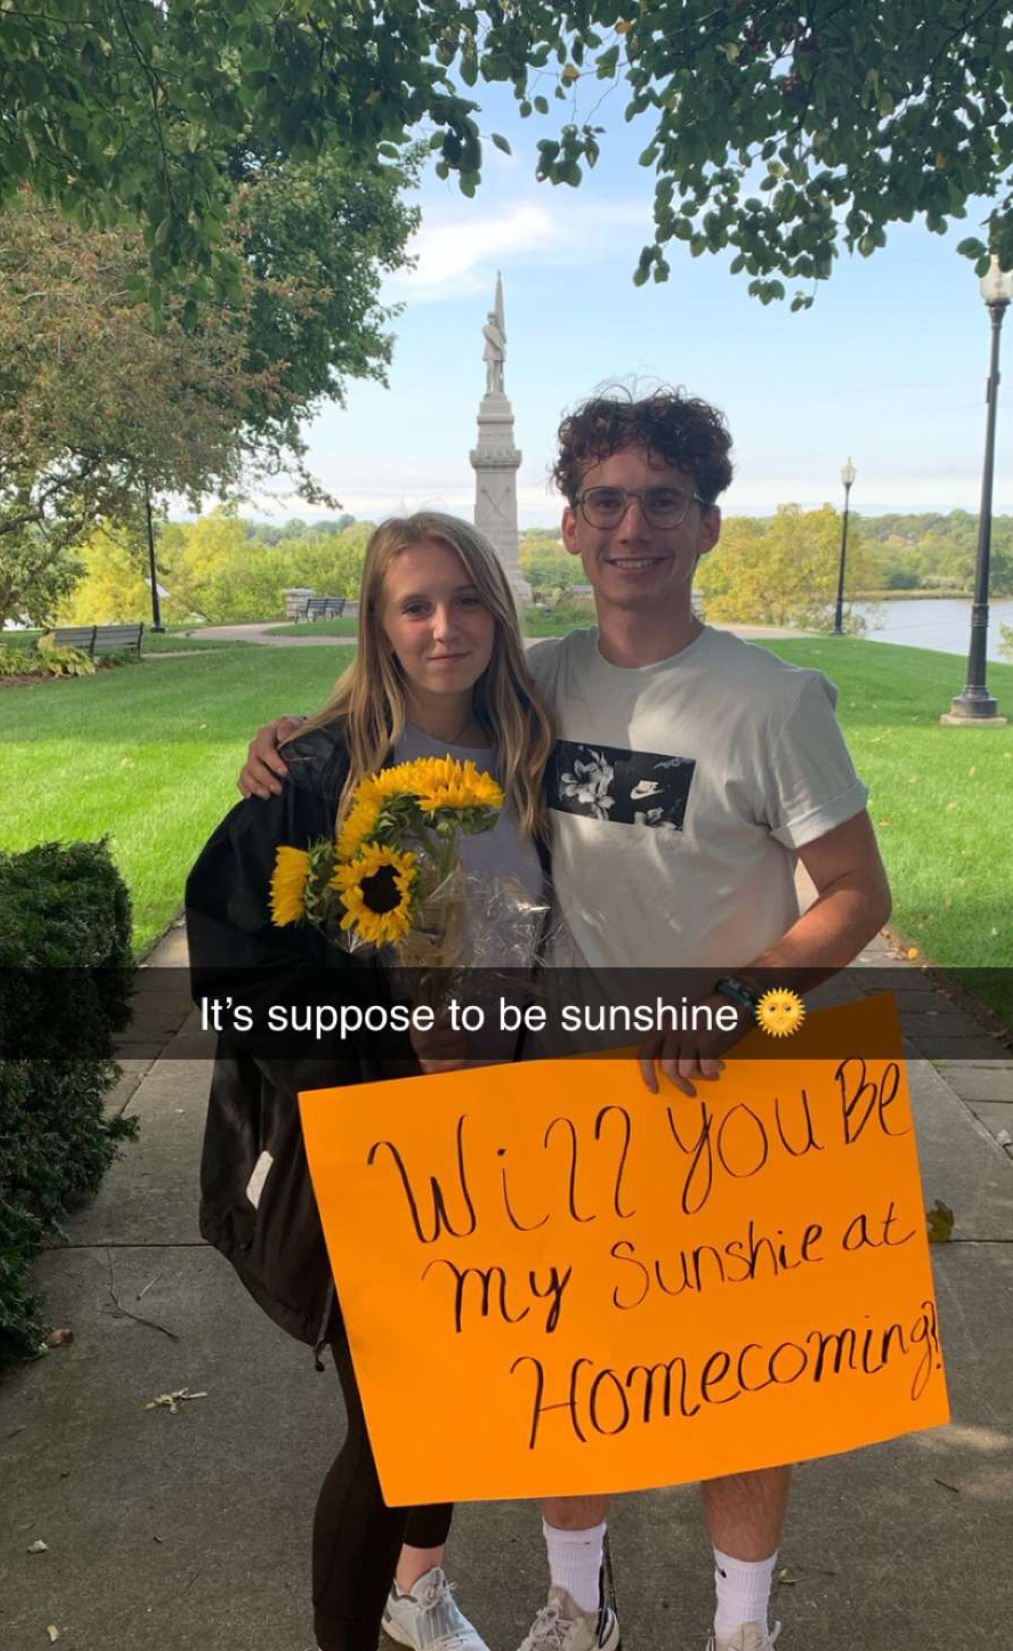 """""""Will you be my sunshine at Homecoming?"""""""